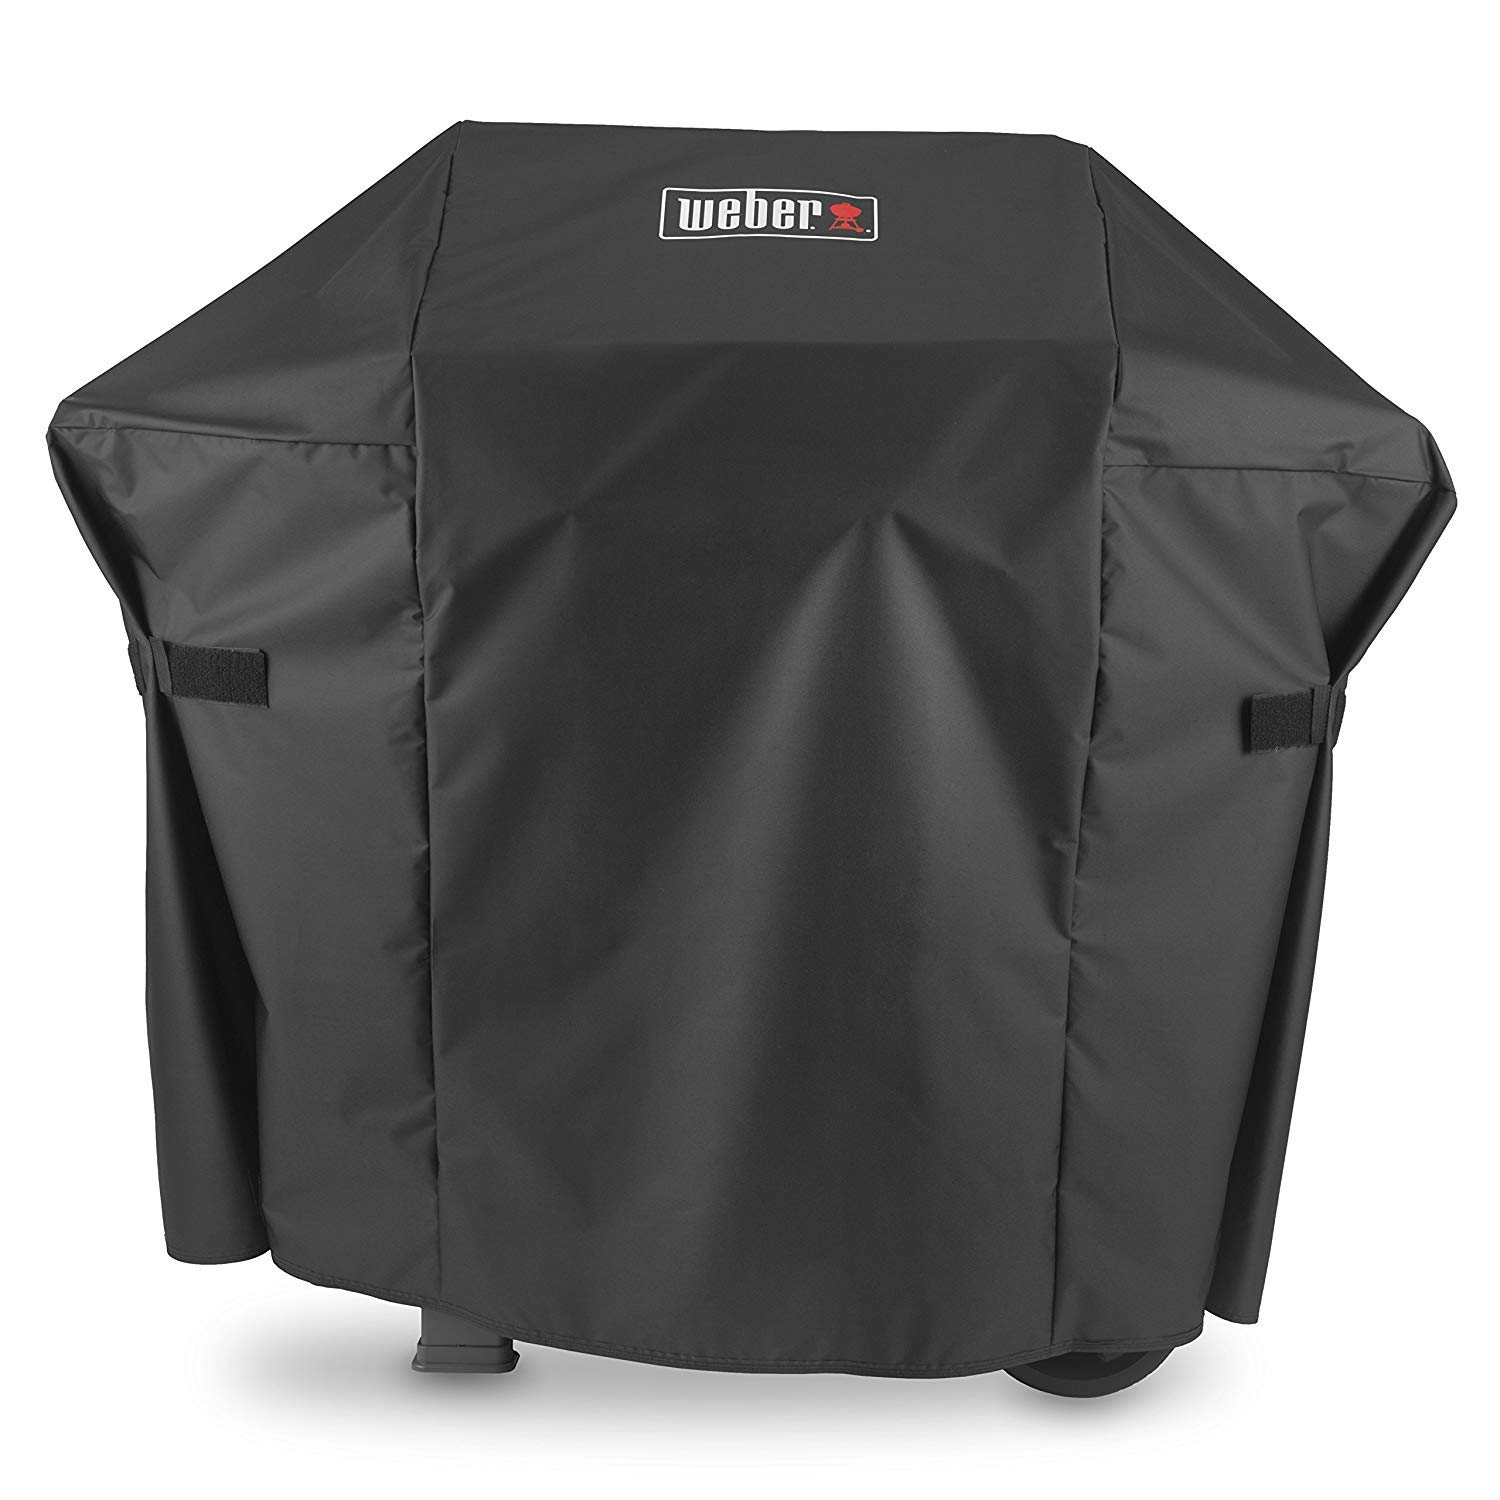 Weber7138 Premium Cover for Weber Spirit II 200 Grill Accessory (48 x 42 x 27 inches)